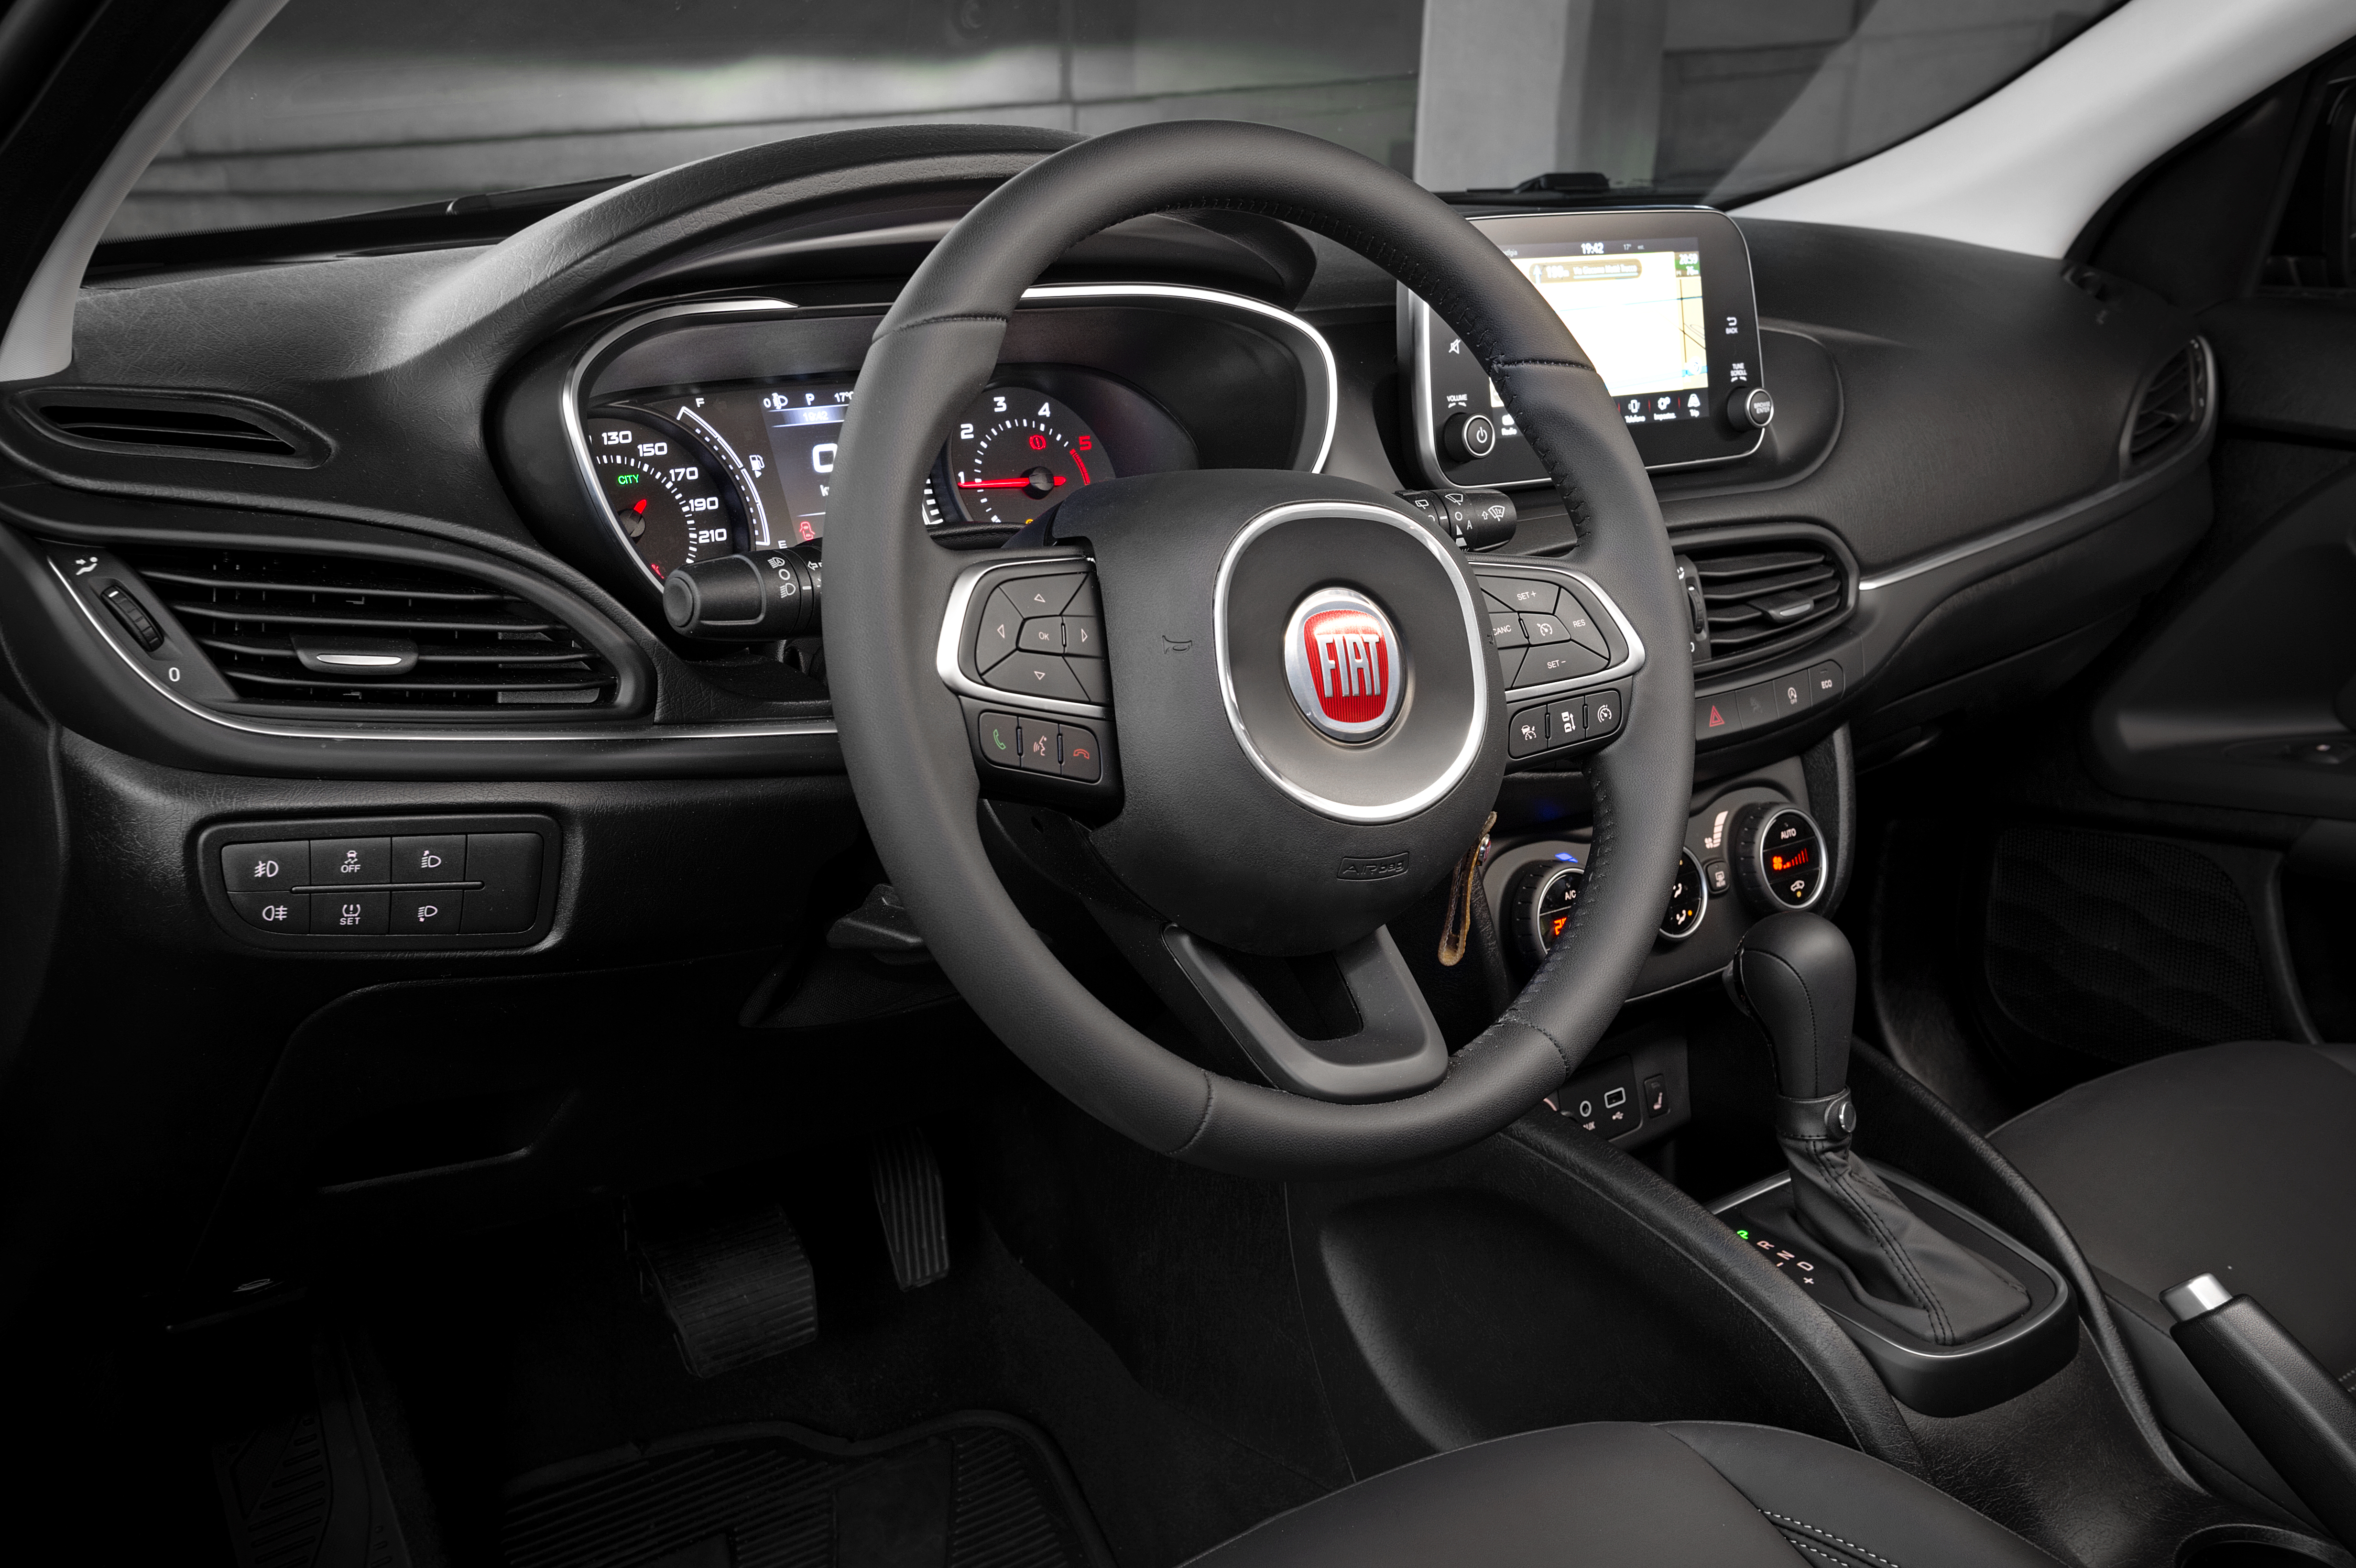 The interior of the 2017 Fiat Tipo station wagon was roomy and comfortable, with radio controls that were easy to operate.